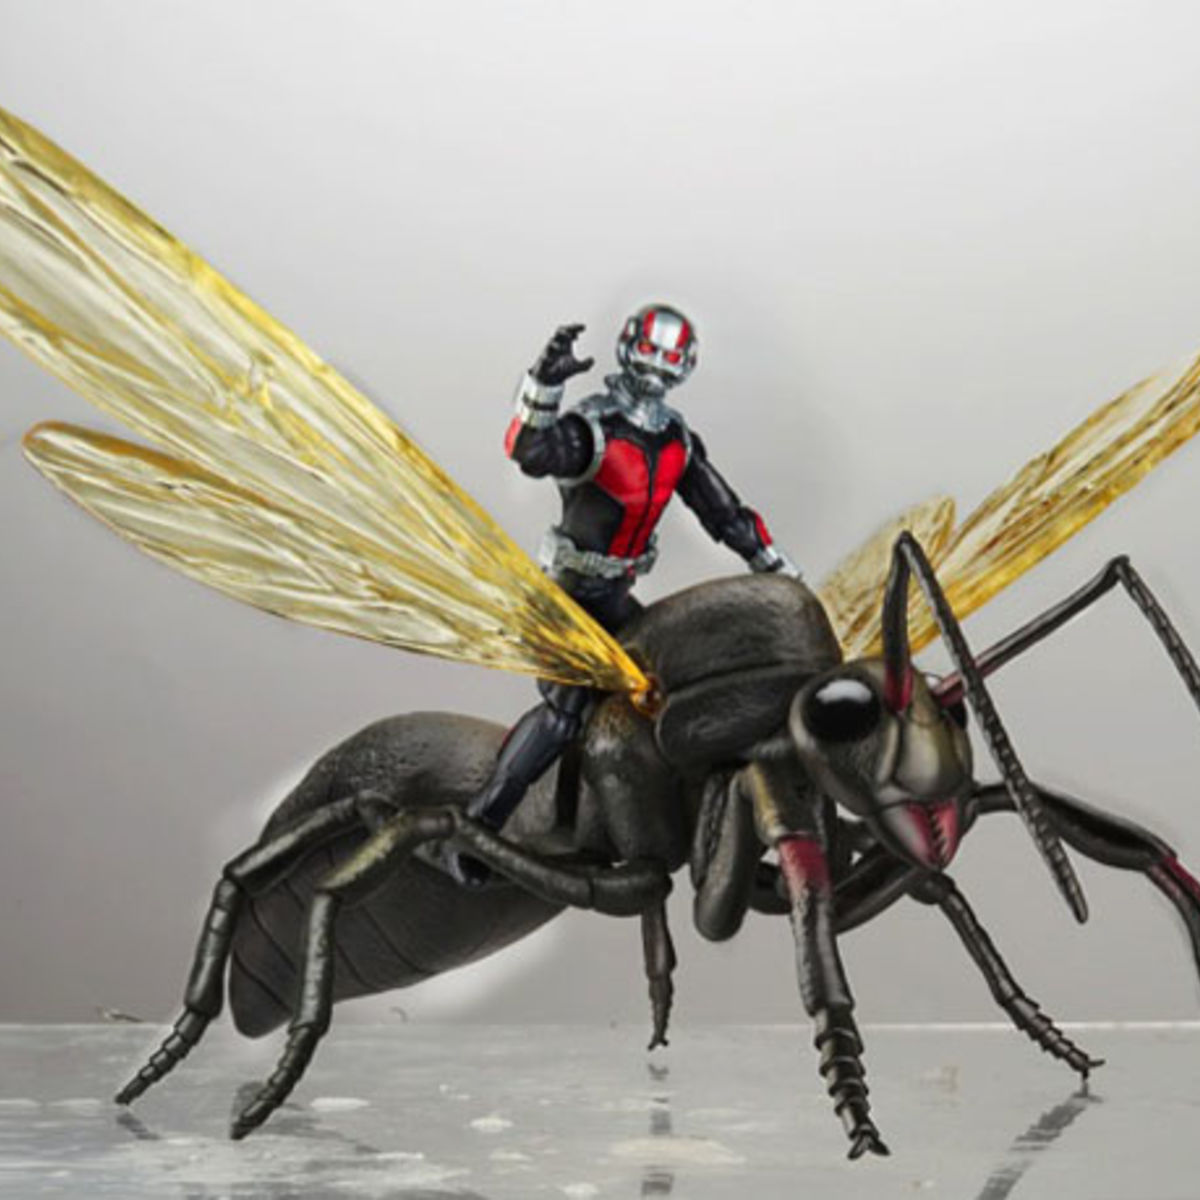 Ant Man with Flying Ant.jpg